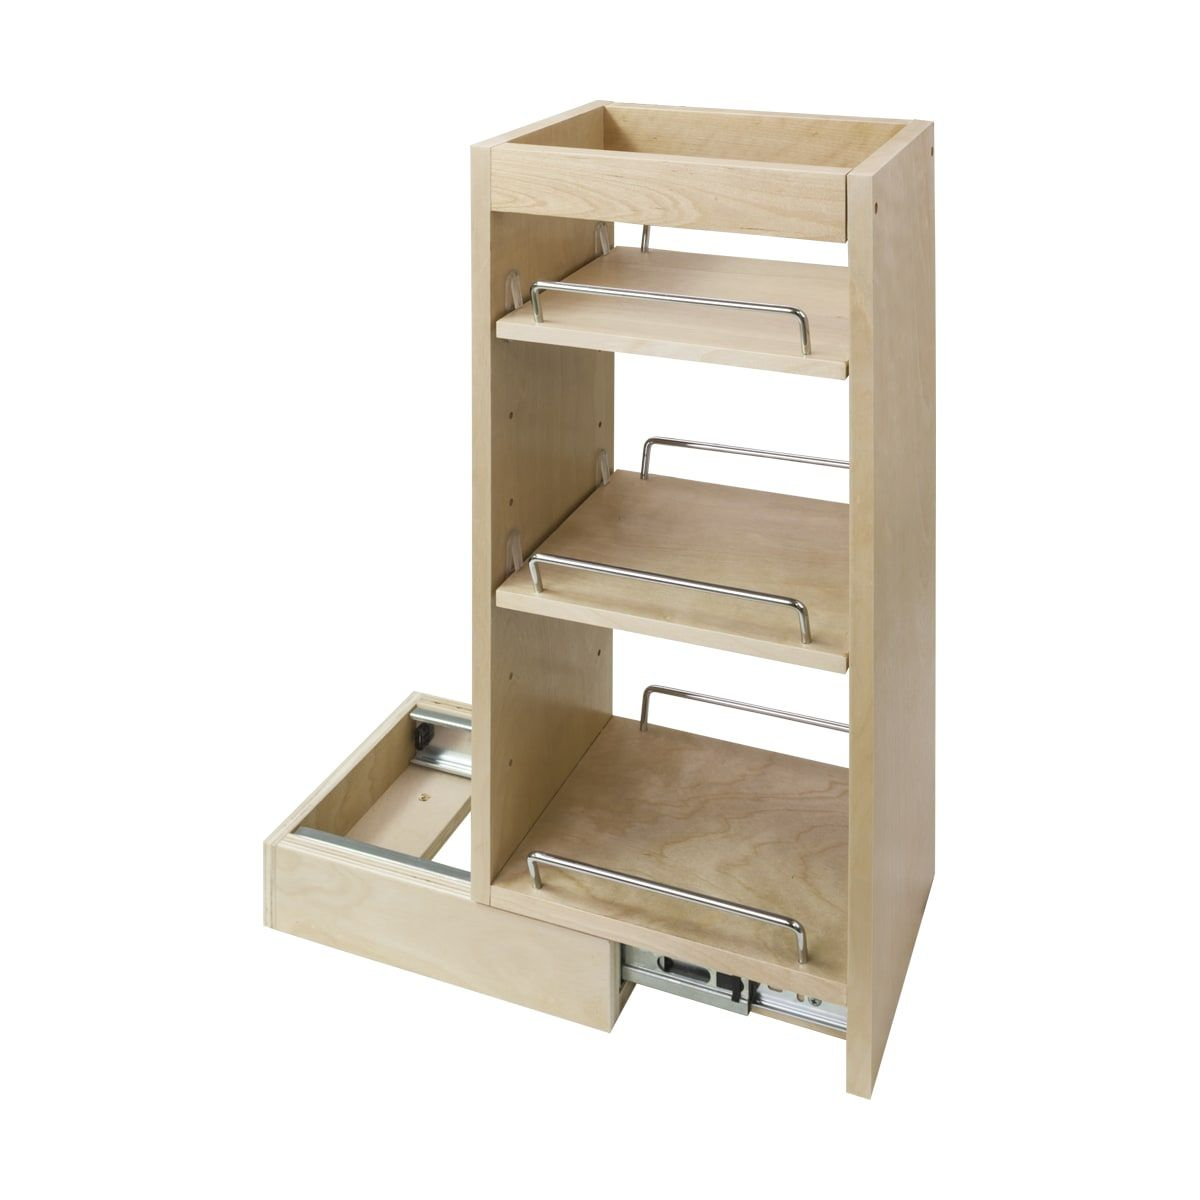 Hardware Resources Wpo2 8sc Natural 24 Inch Tall 8 Inch Wide Wall Filler Pull Out Organizer With Adjustable Shelves And Full Extension Ball Bearing Slides In 2020 Diy Bathroom Storage Wall Cabinet